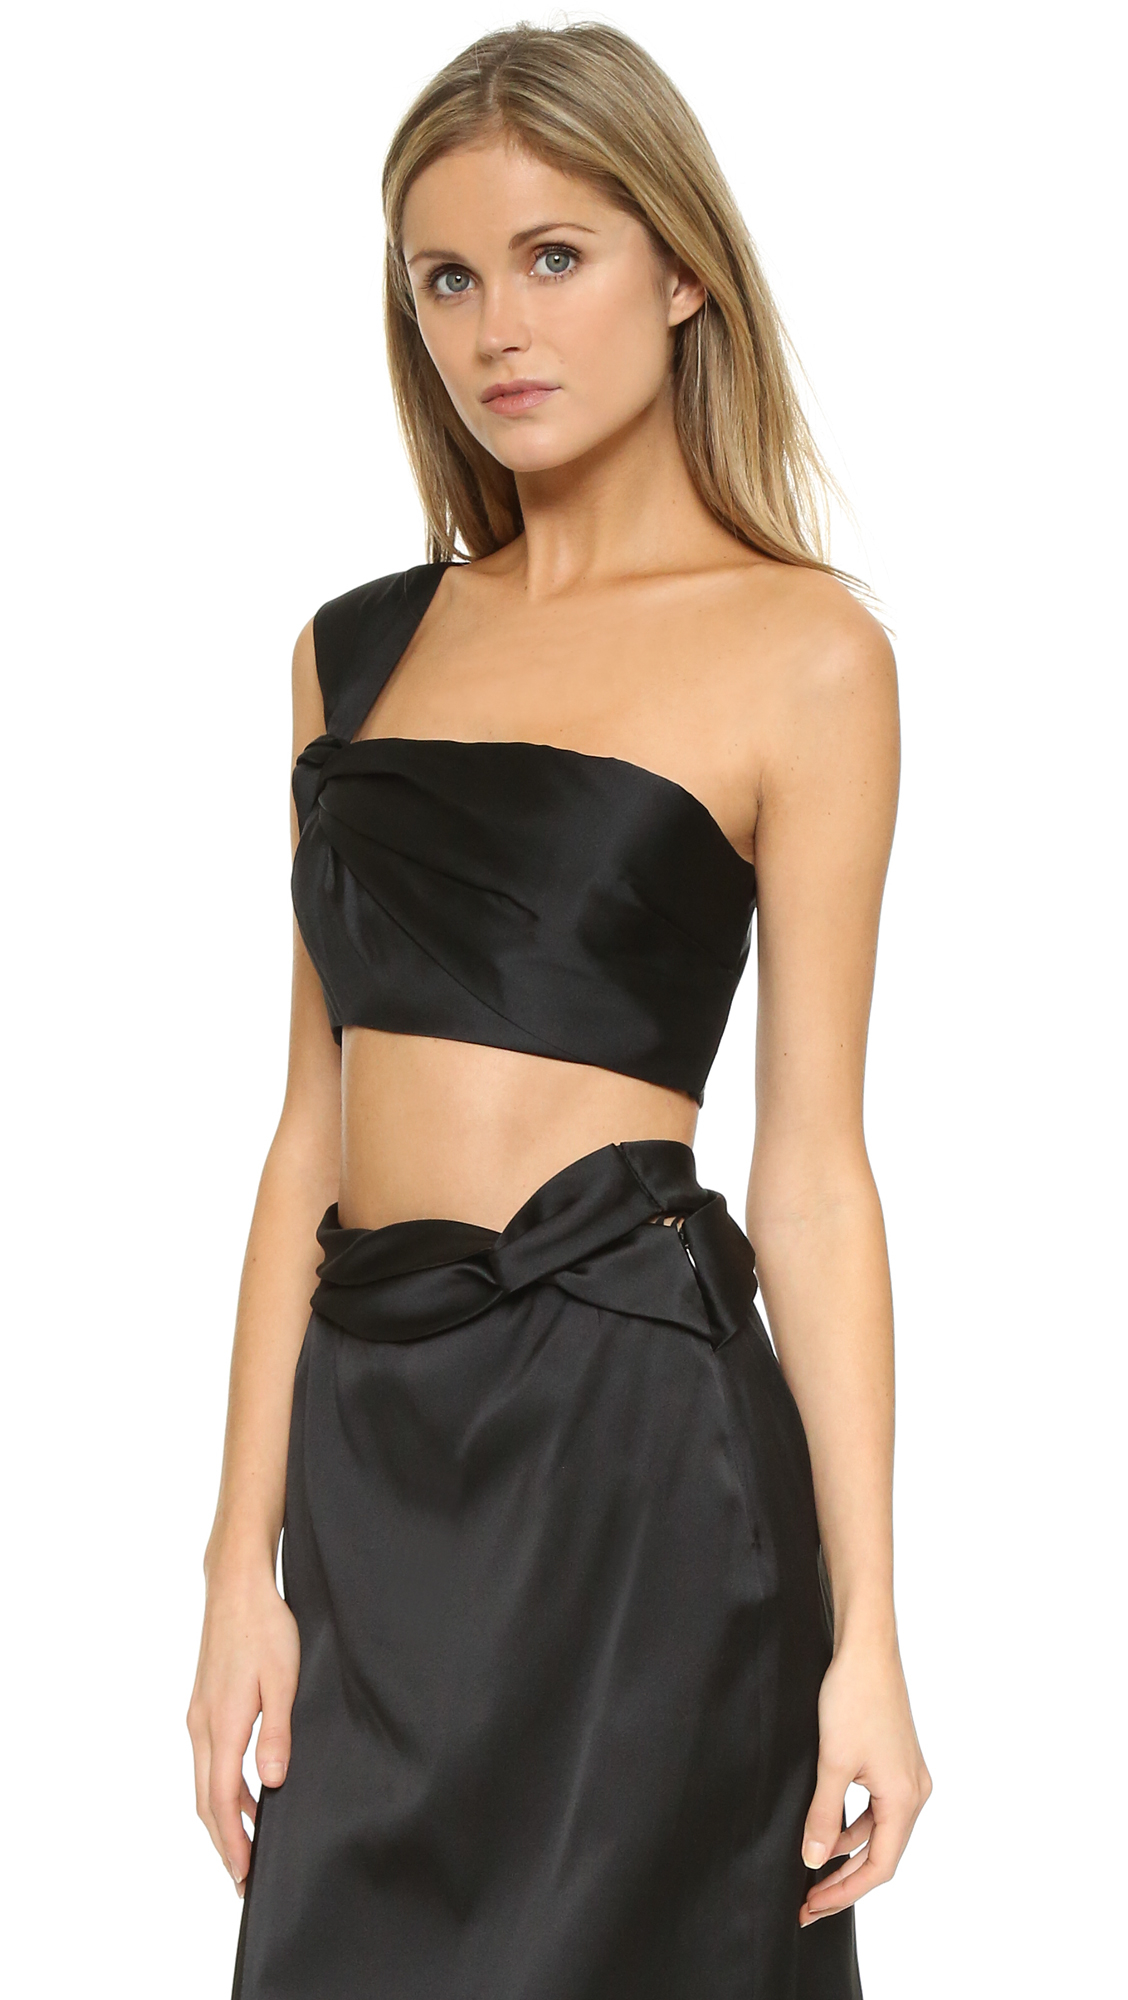 6fd64e22e4620 Lyst - 3.1 Phillip Lim One Shoulder Knotted Crop Top in Black